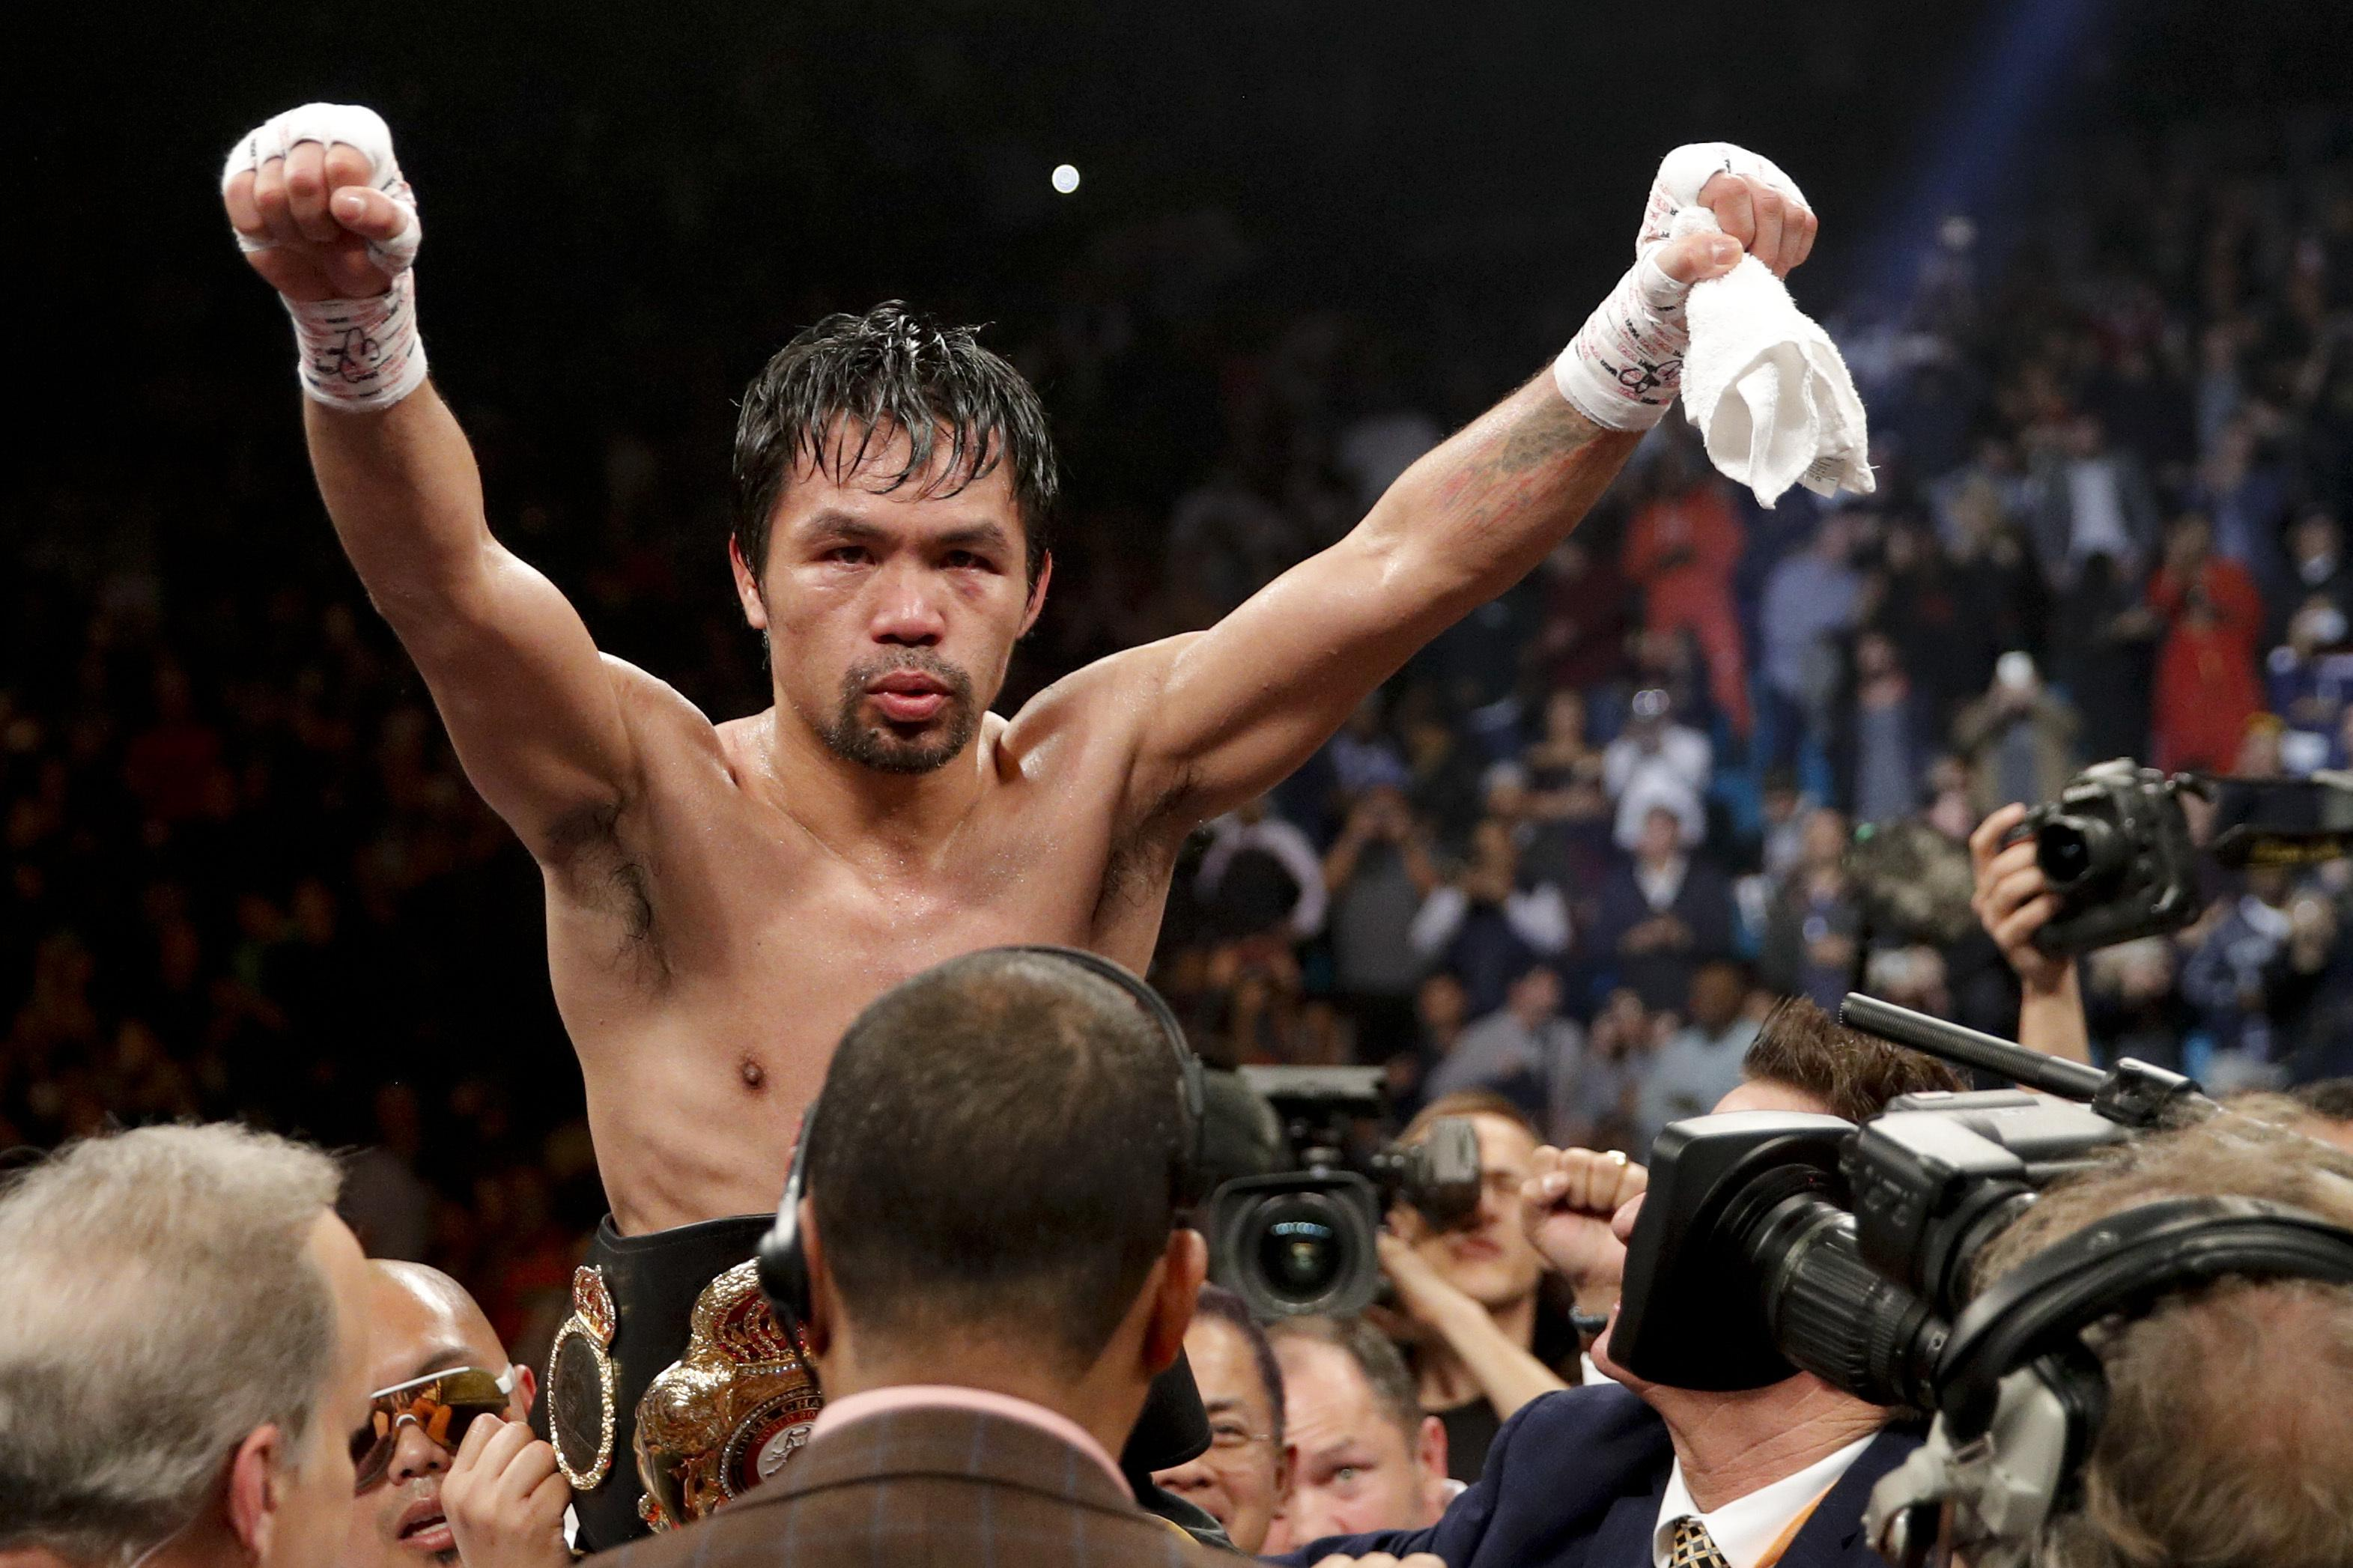 Manny Pacquiao showed he still has plenty left in the tank with an easy win against Adrien Broner